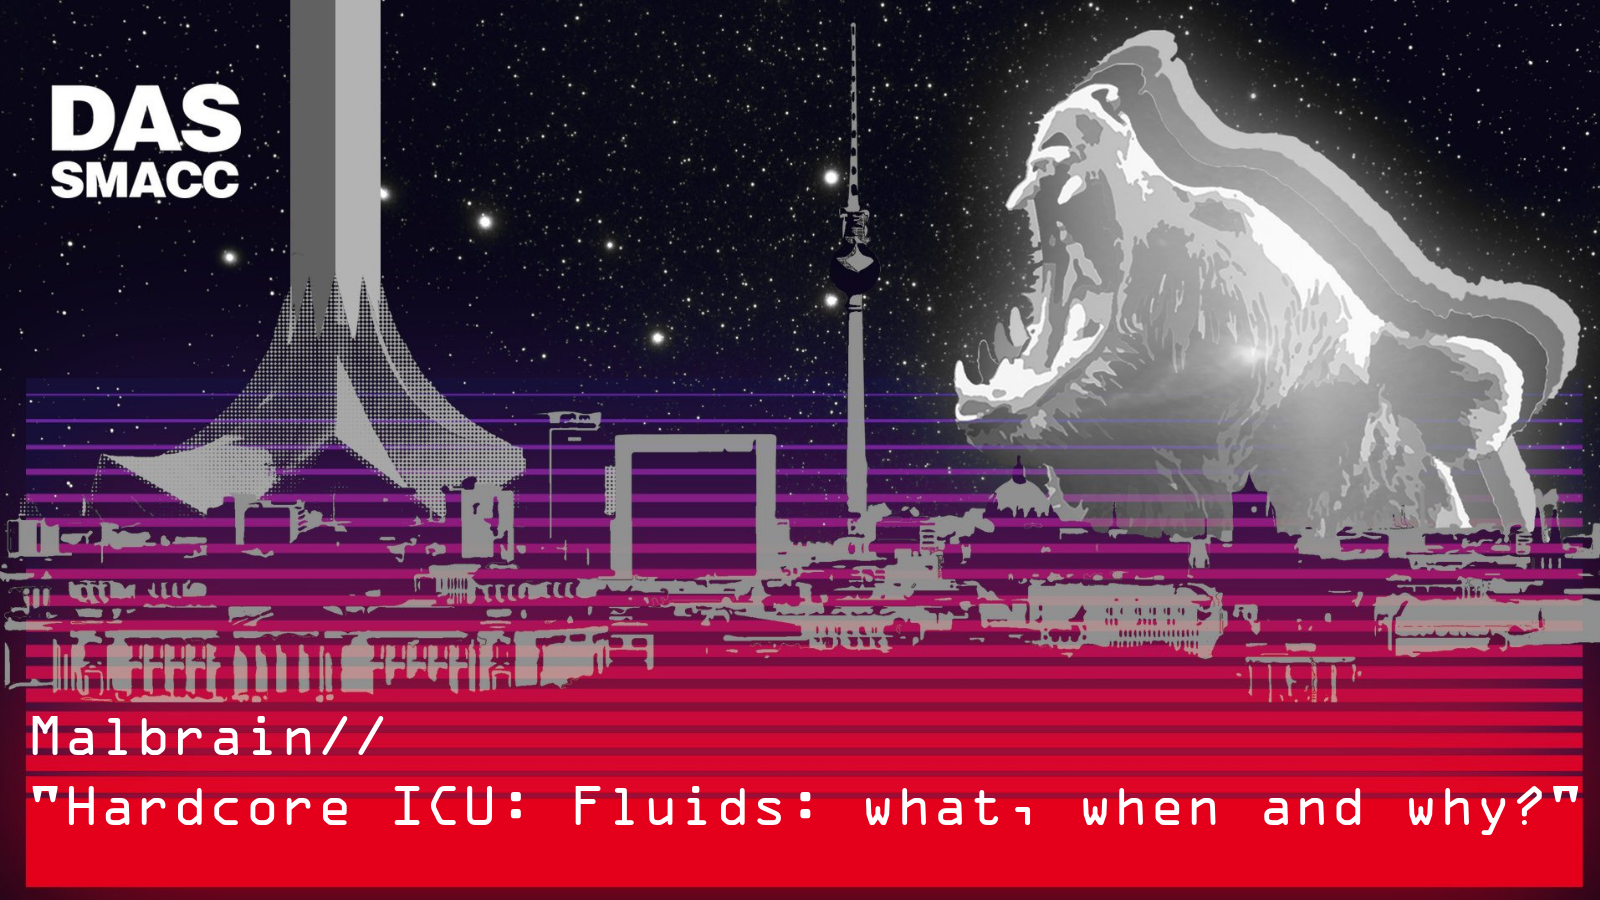 Fluids: what, when and why?